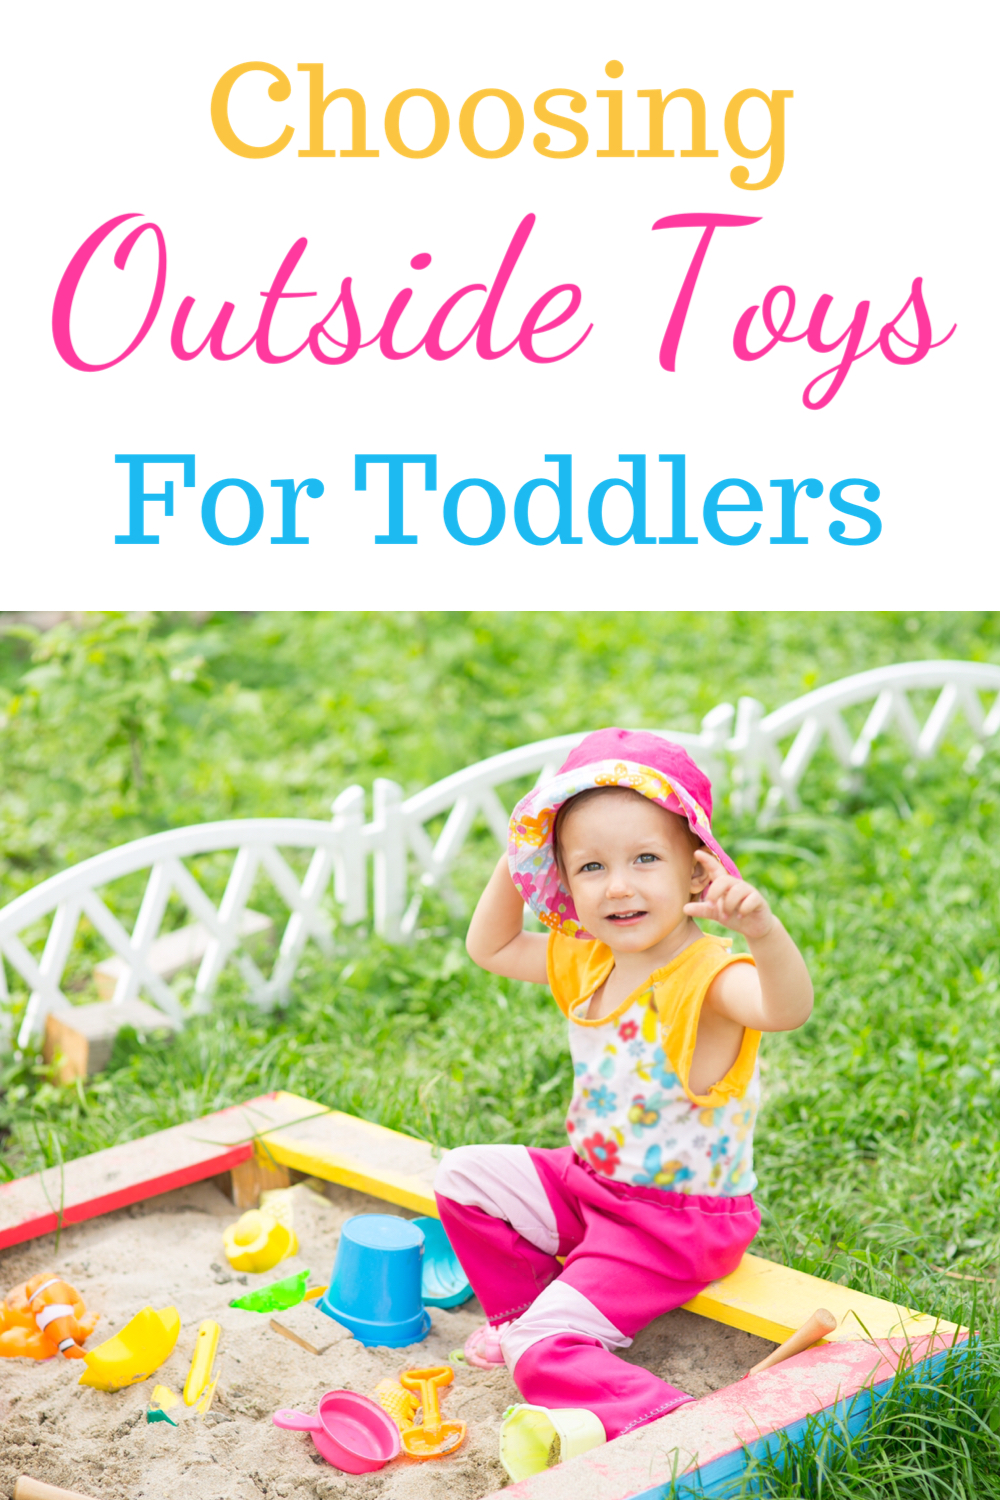 Choosing outside toys for toddlers - toddler playing in sandpit